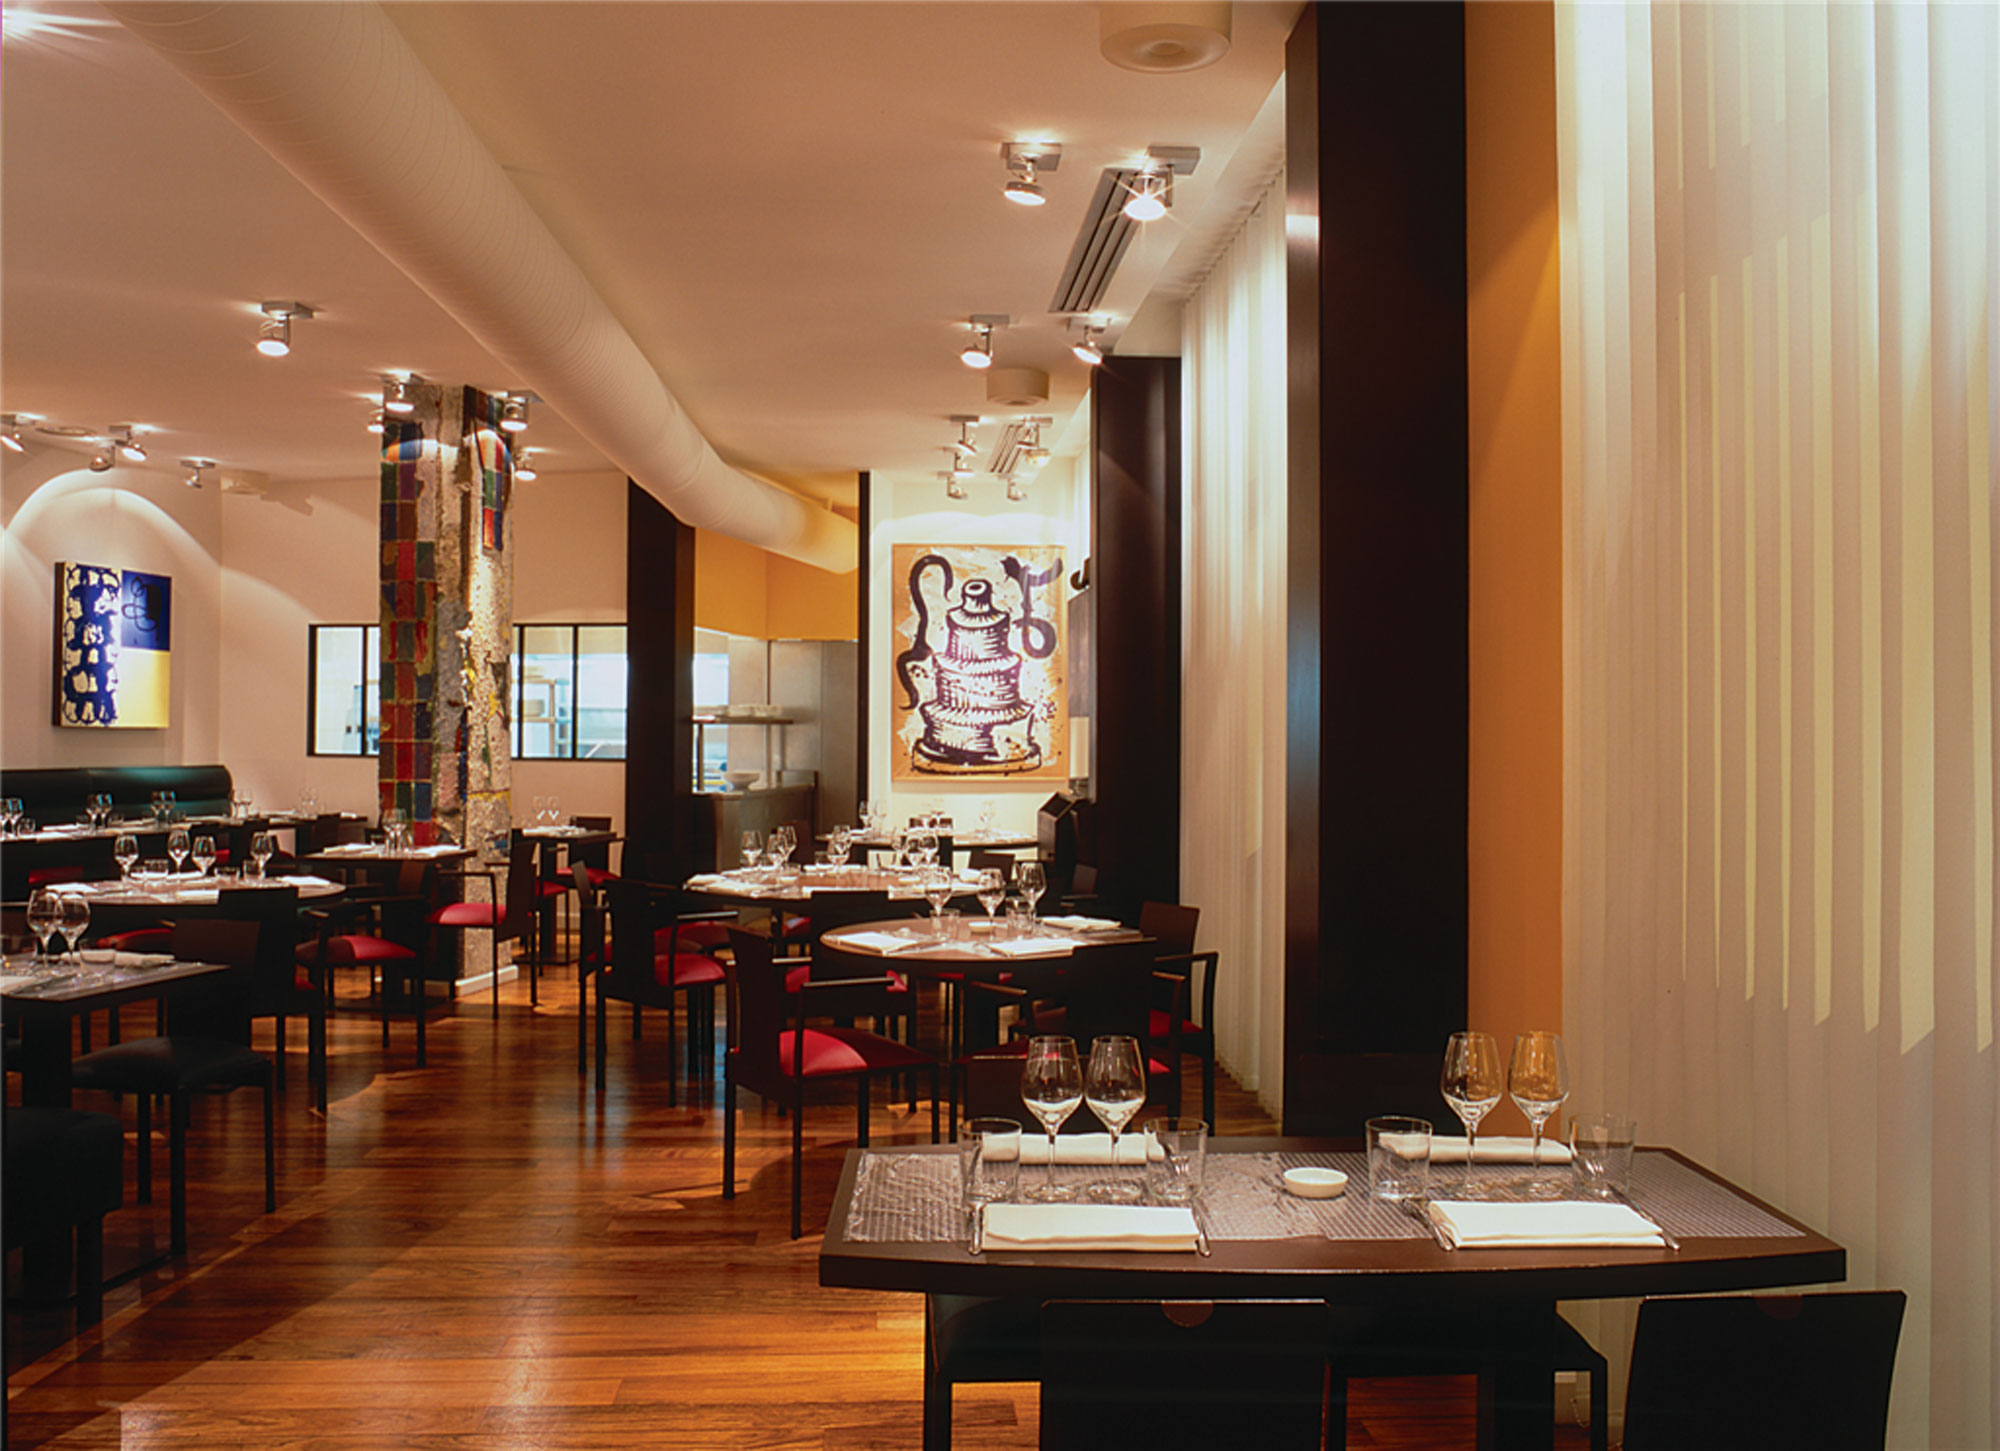 Ze kitchen galerie one of the best fusion restaurants in for Aura thai fusion cuisine new york ny